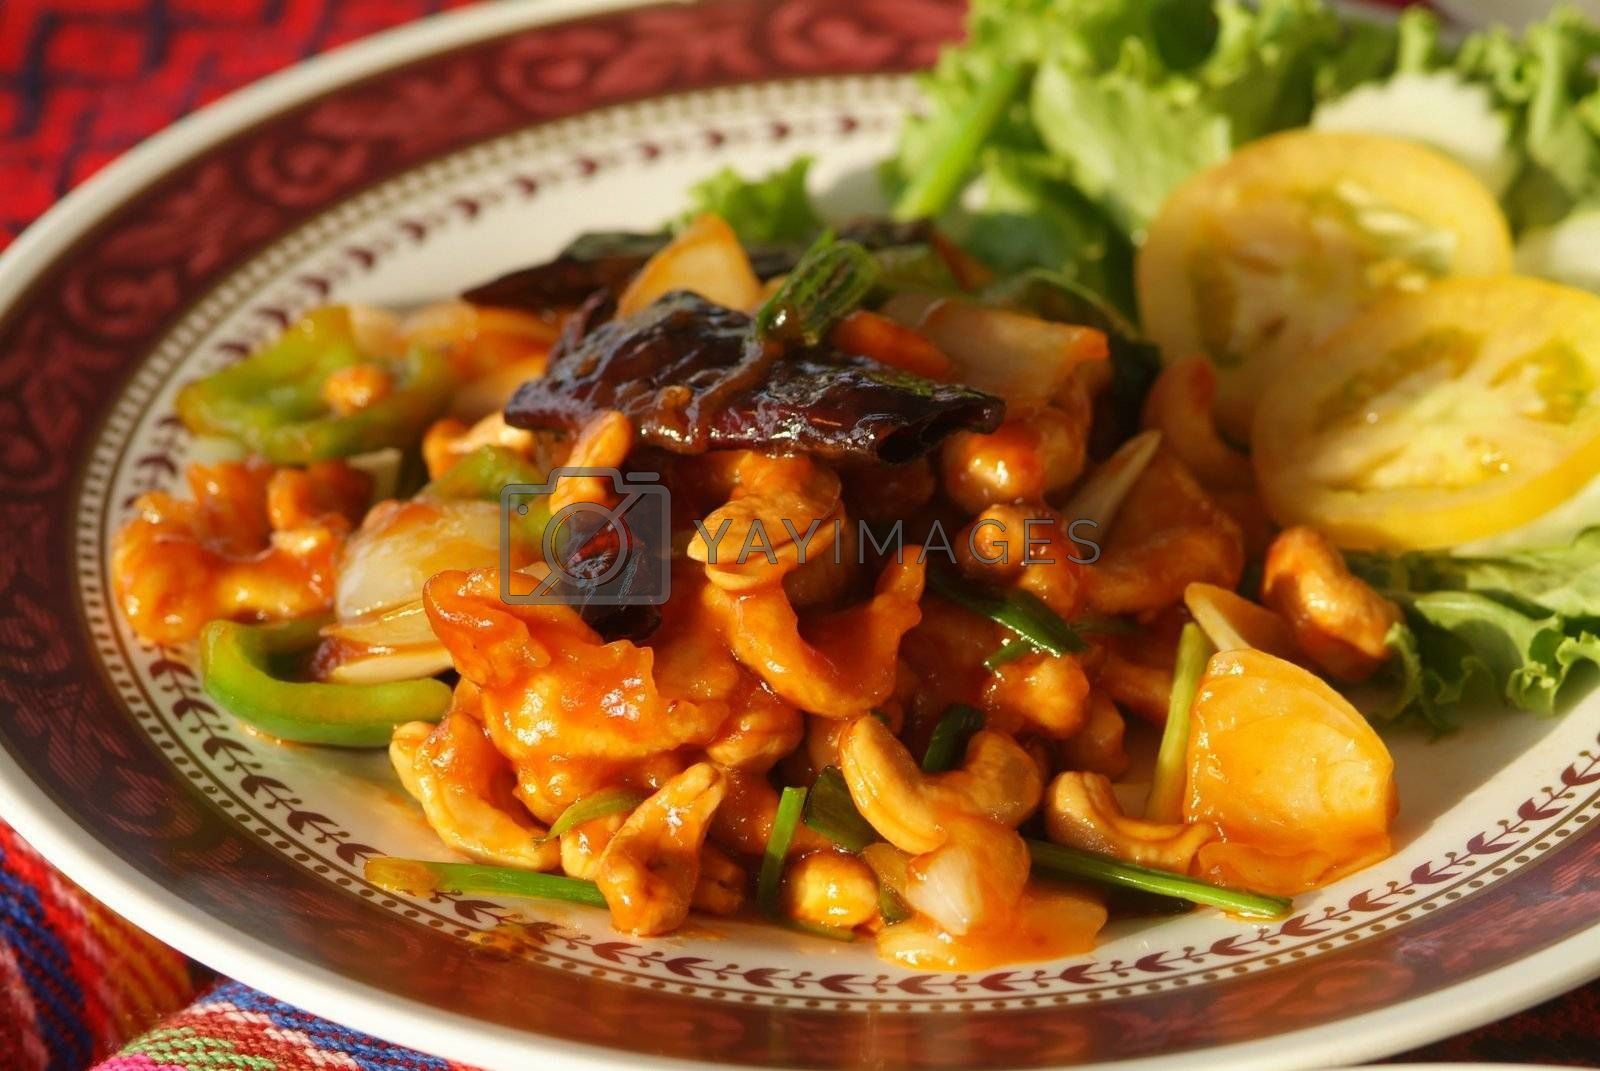 Chicken with cashew nuts by epixx